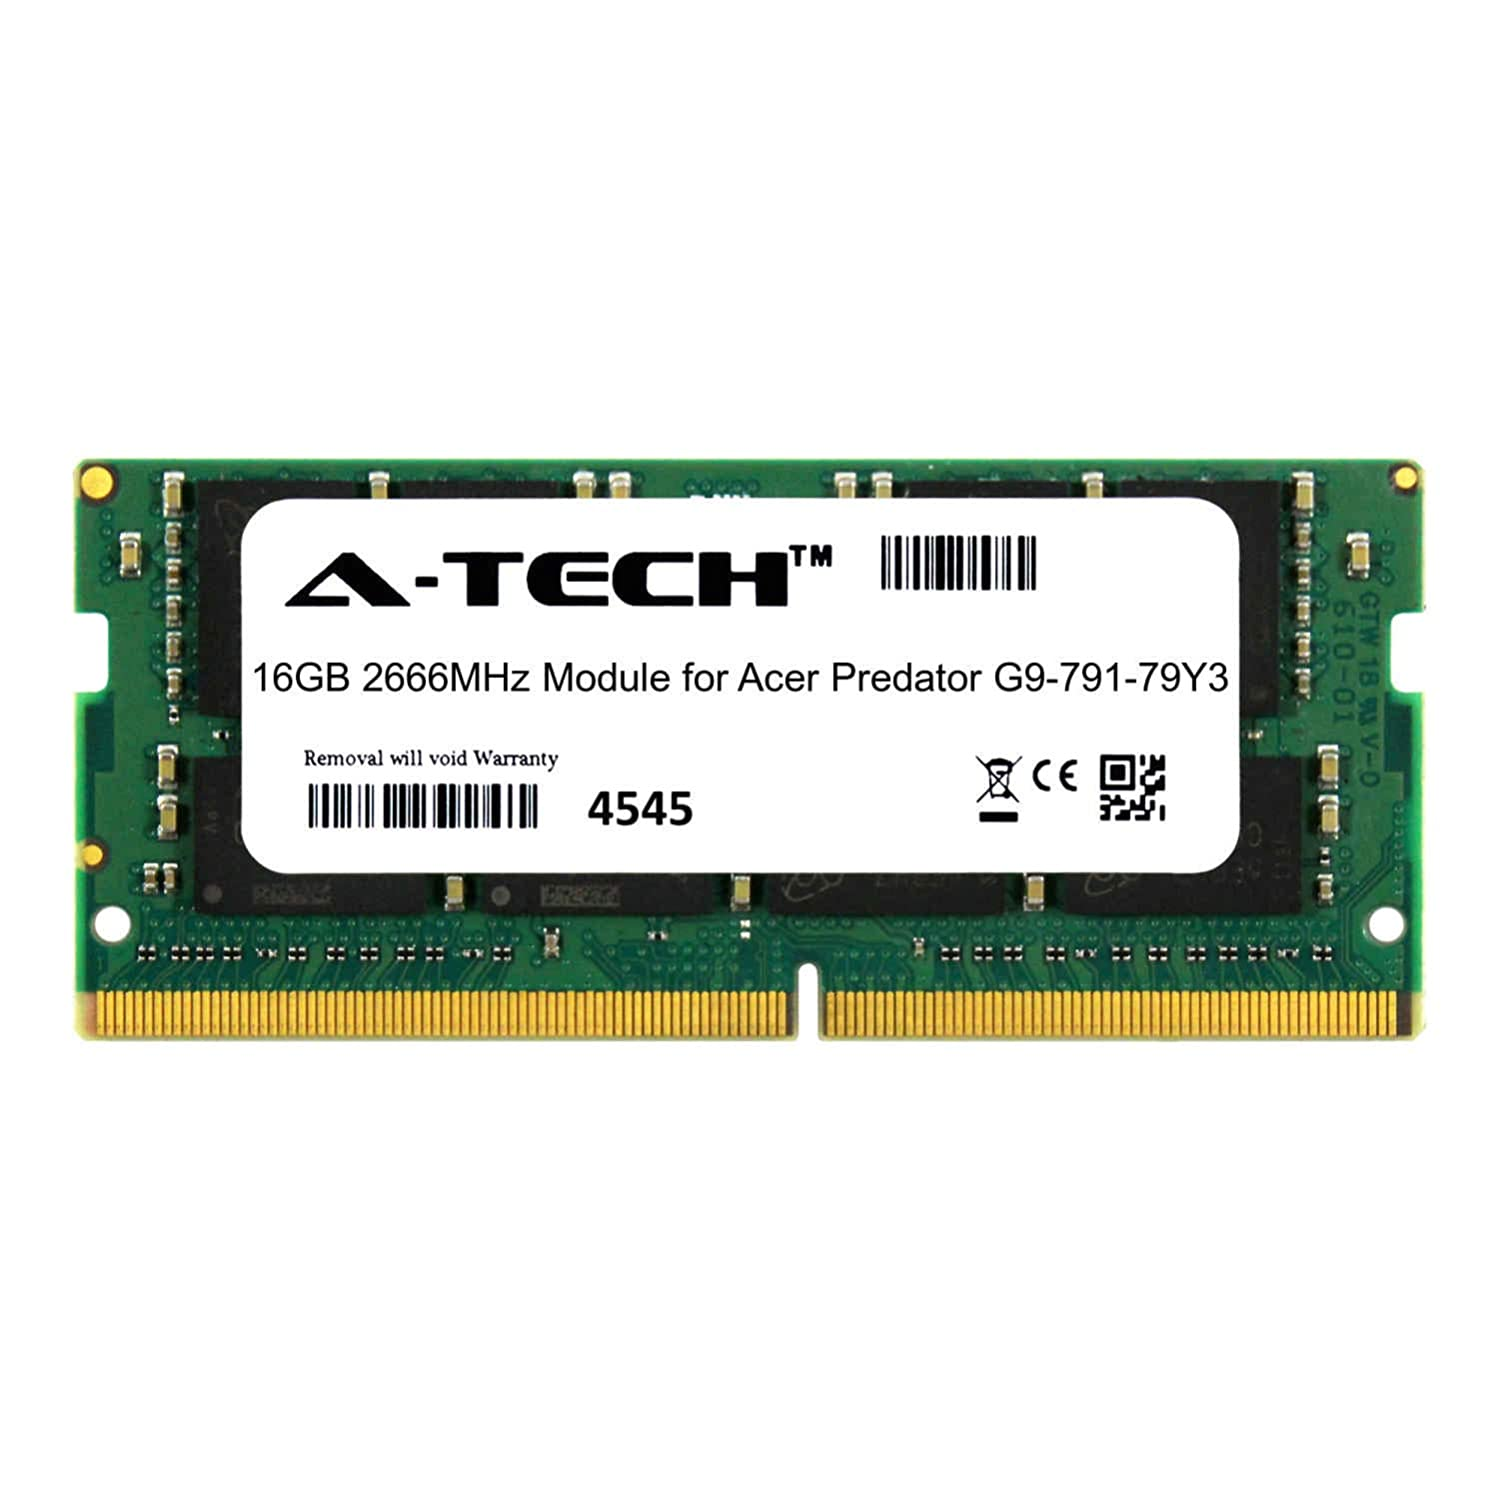 A-Tech 16GB Module for Acer Predator G9-791-79Y3 Laptop & Notebook Compatible DDR4 2666Mhz Memory Ram (ATMS316828A25832X1)